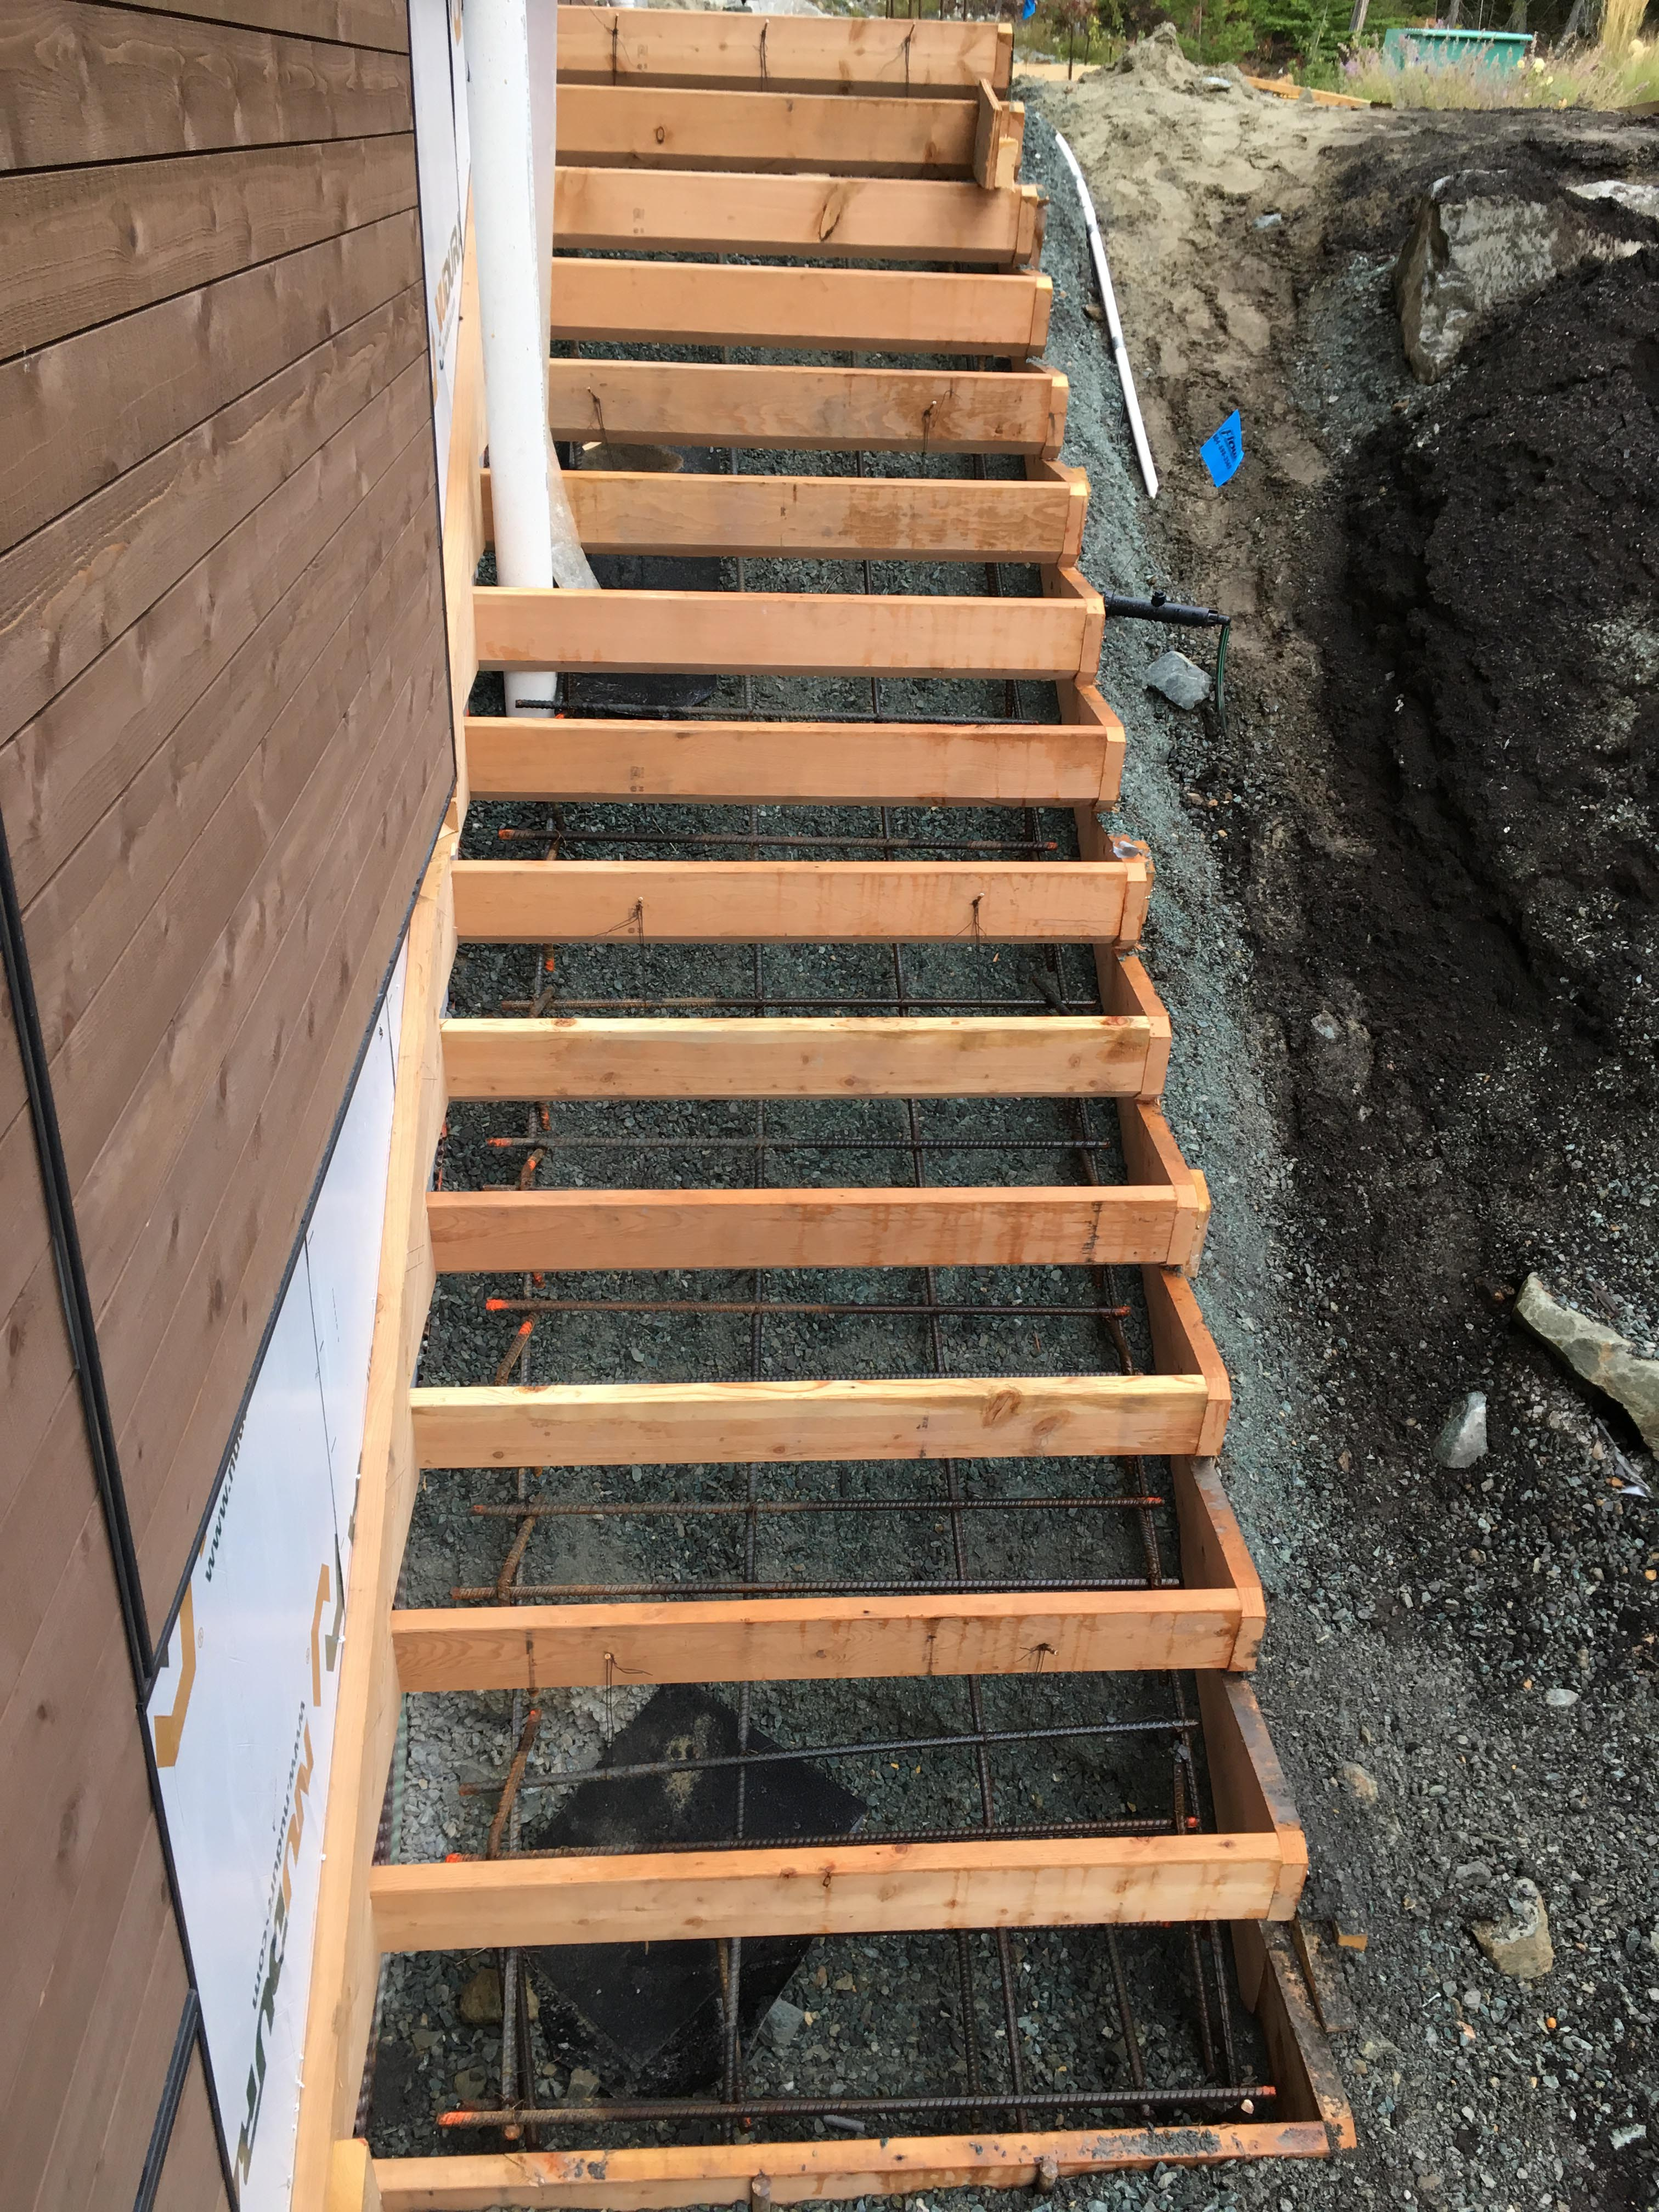 Pound 4 Pound, Framing and Forming. Forming Stairs